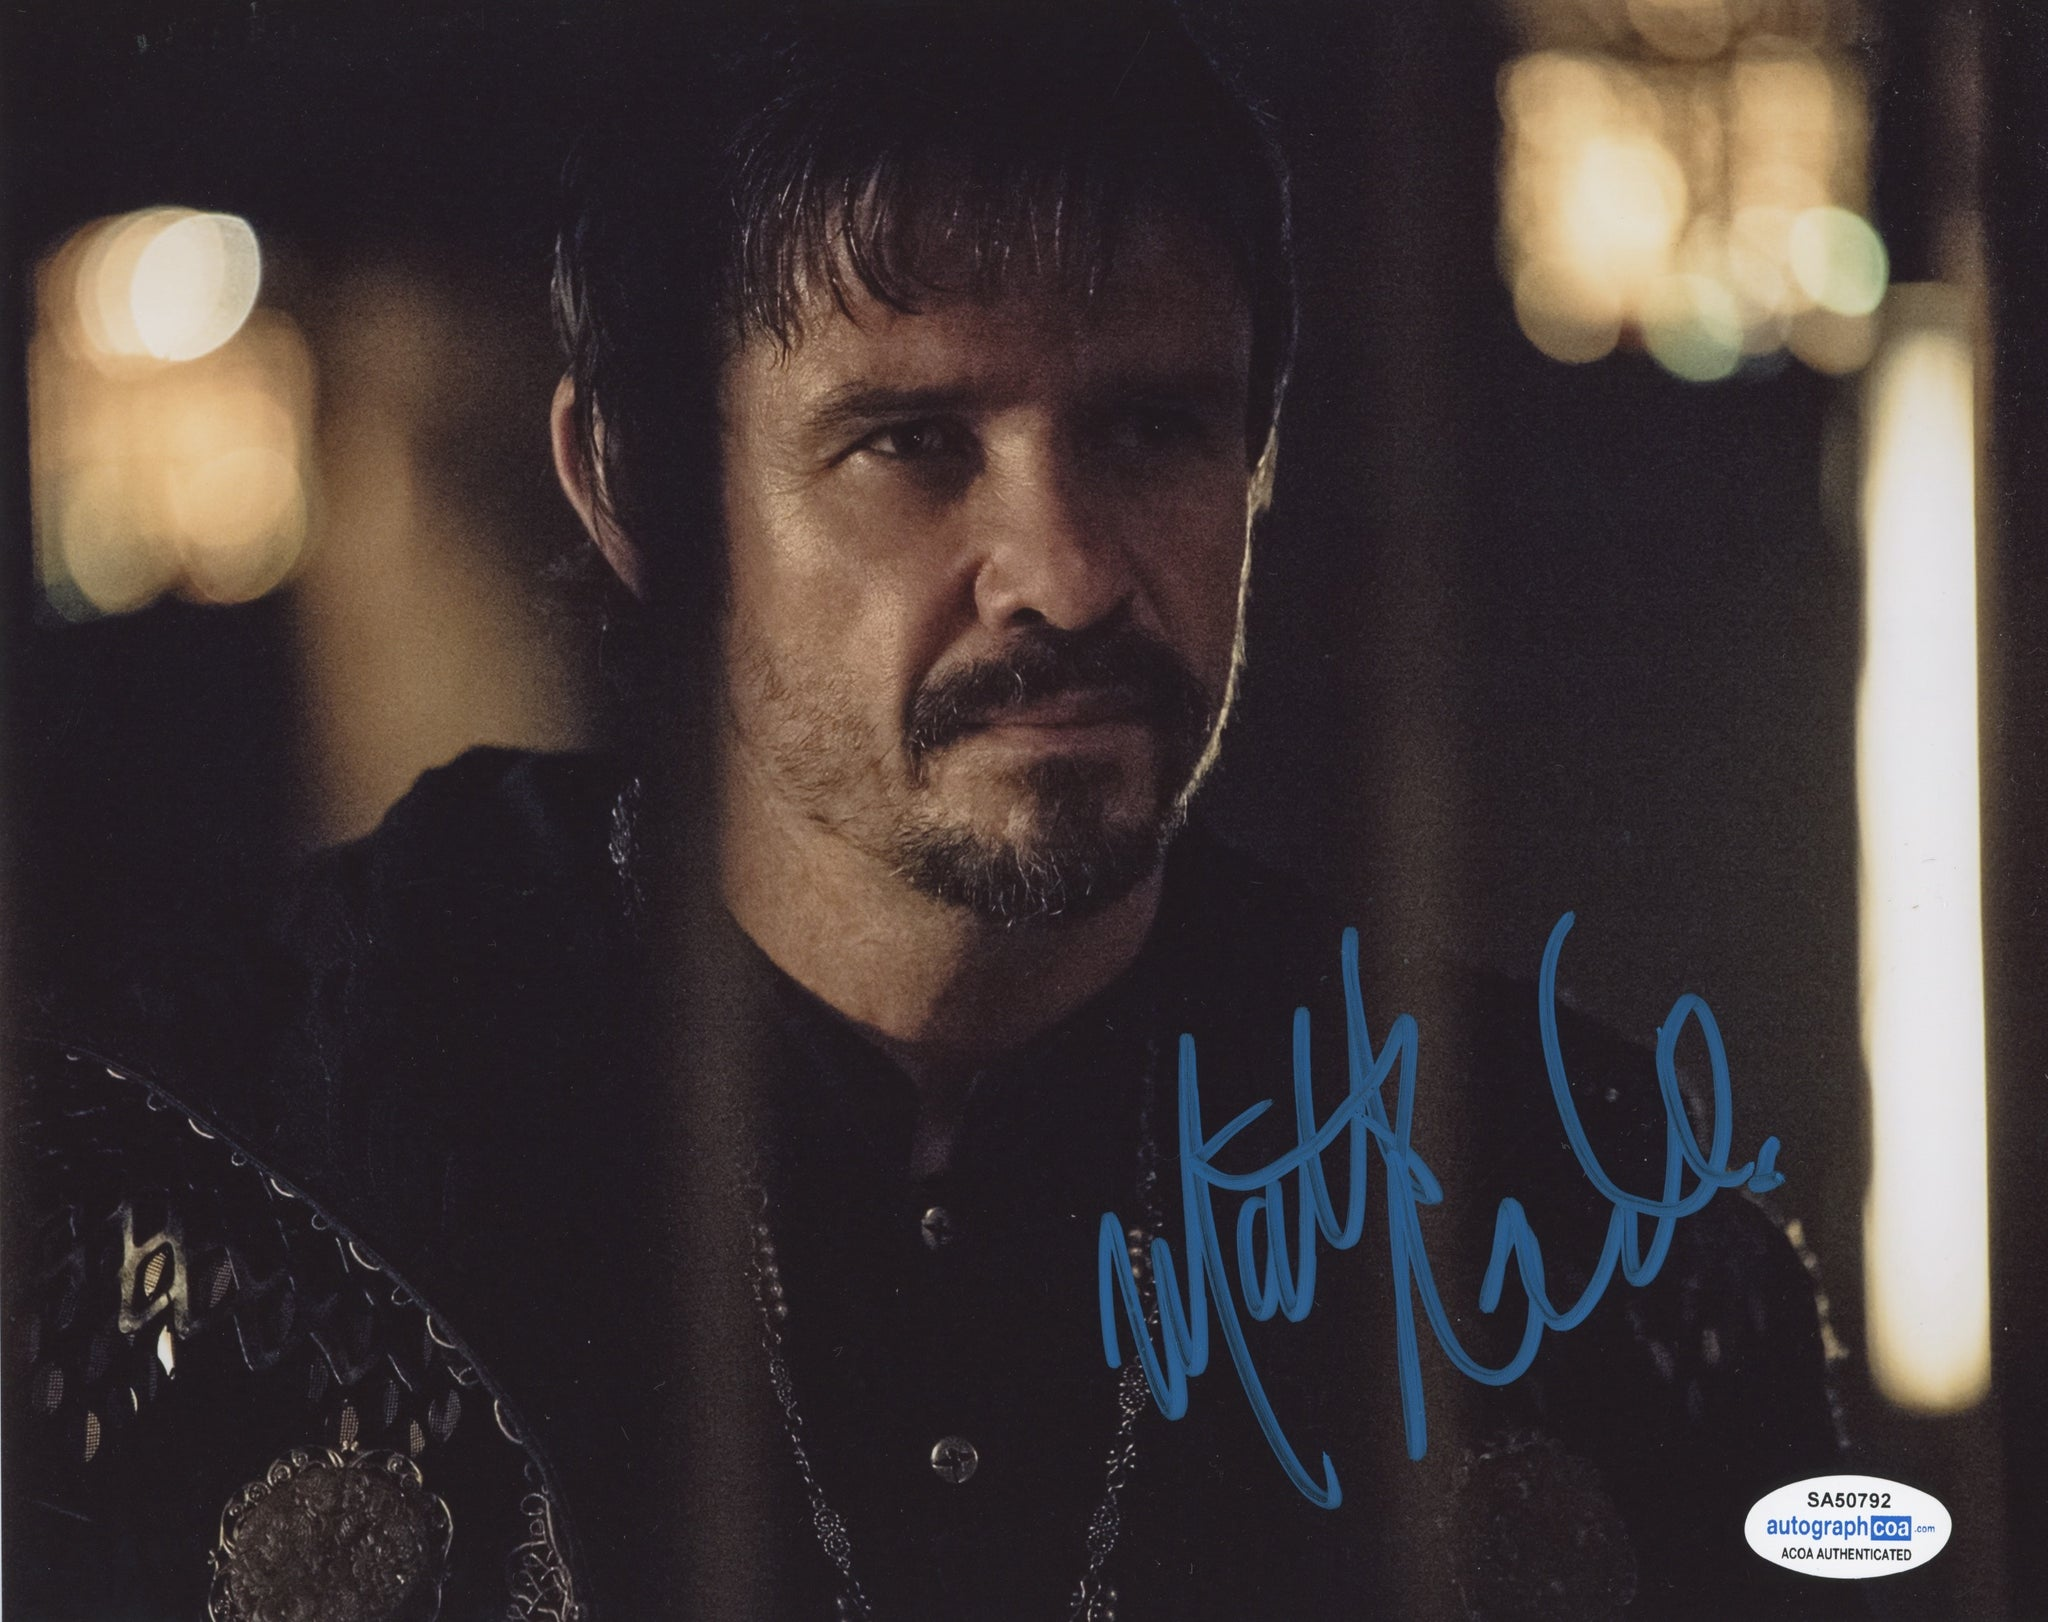 Matt Nable Arrow Signed Autograph 8x10 Photo ACOA